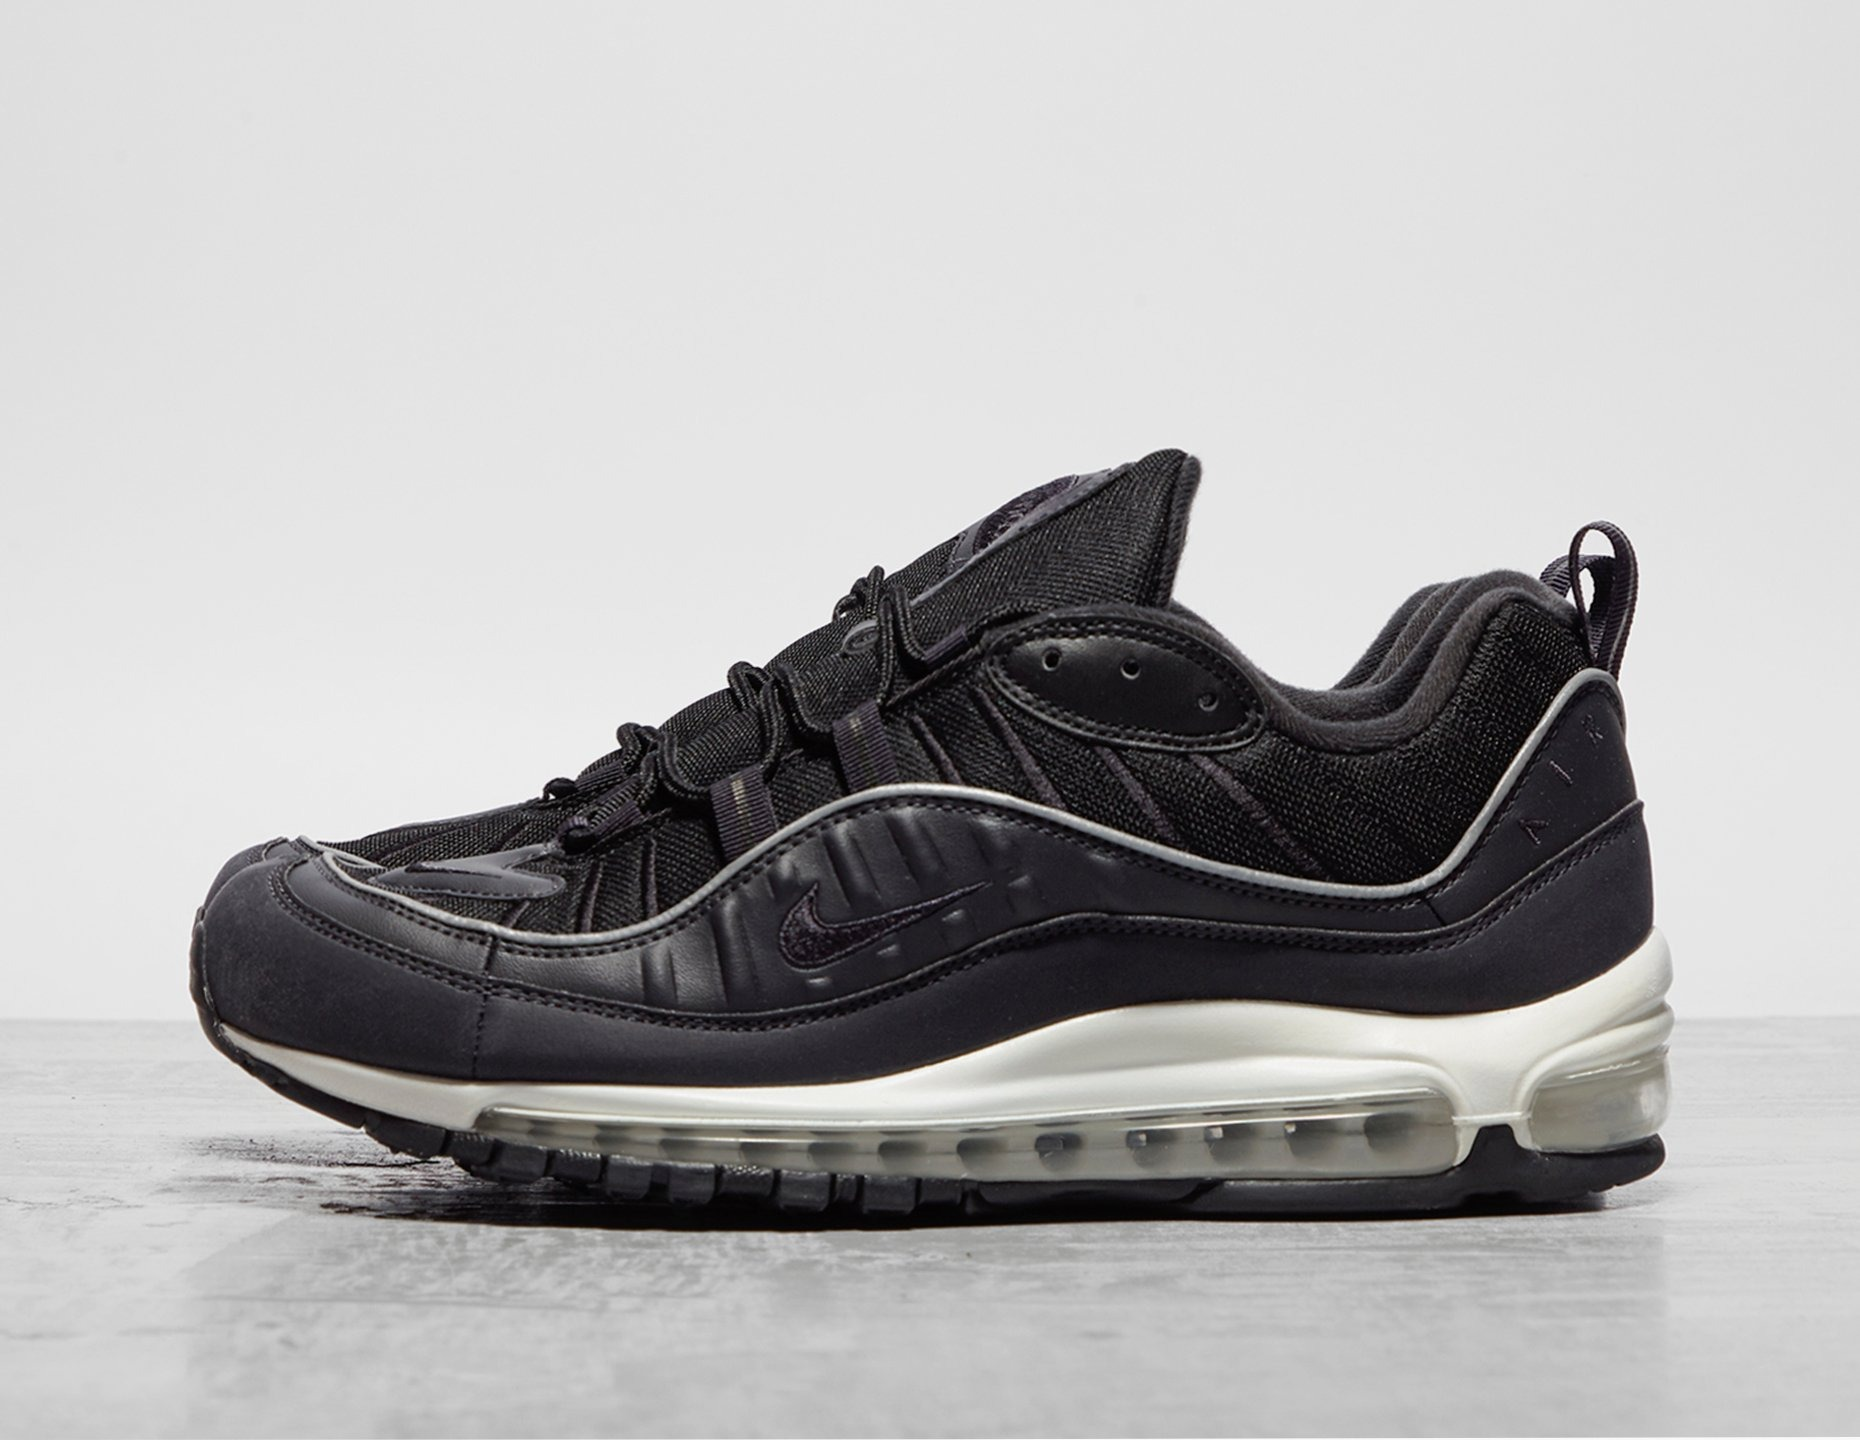 Footpatrol Nike Air Max 98 'Oil Grey'. Available | Facebook